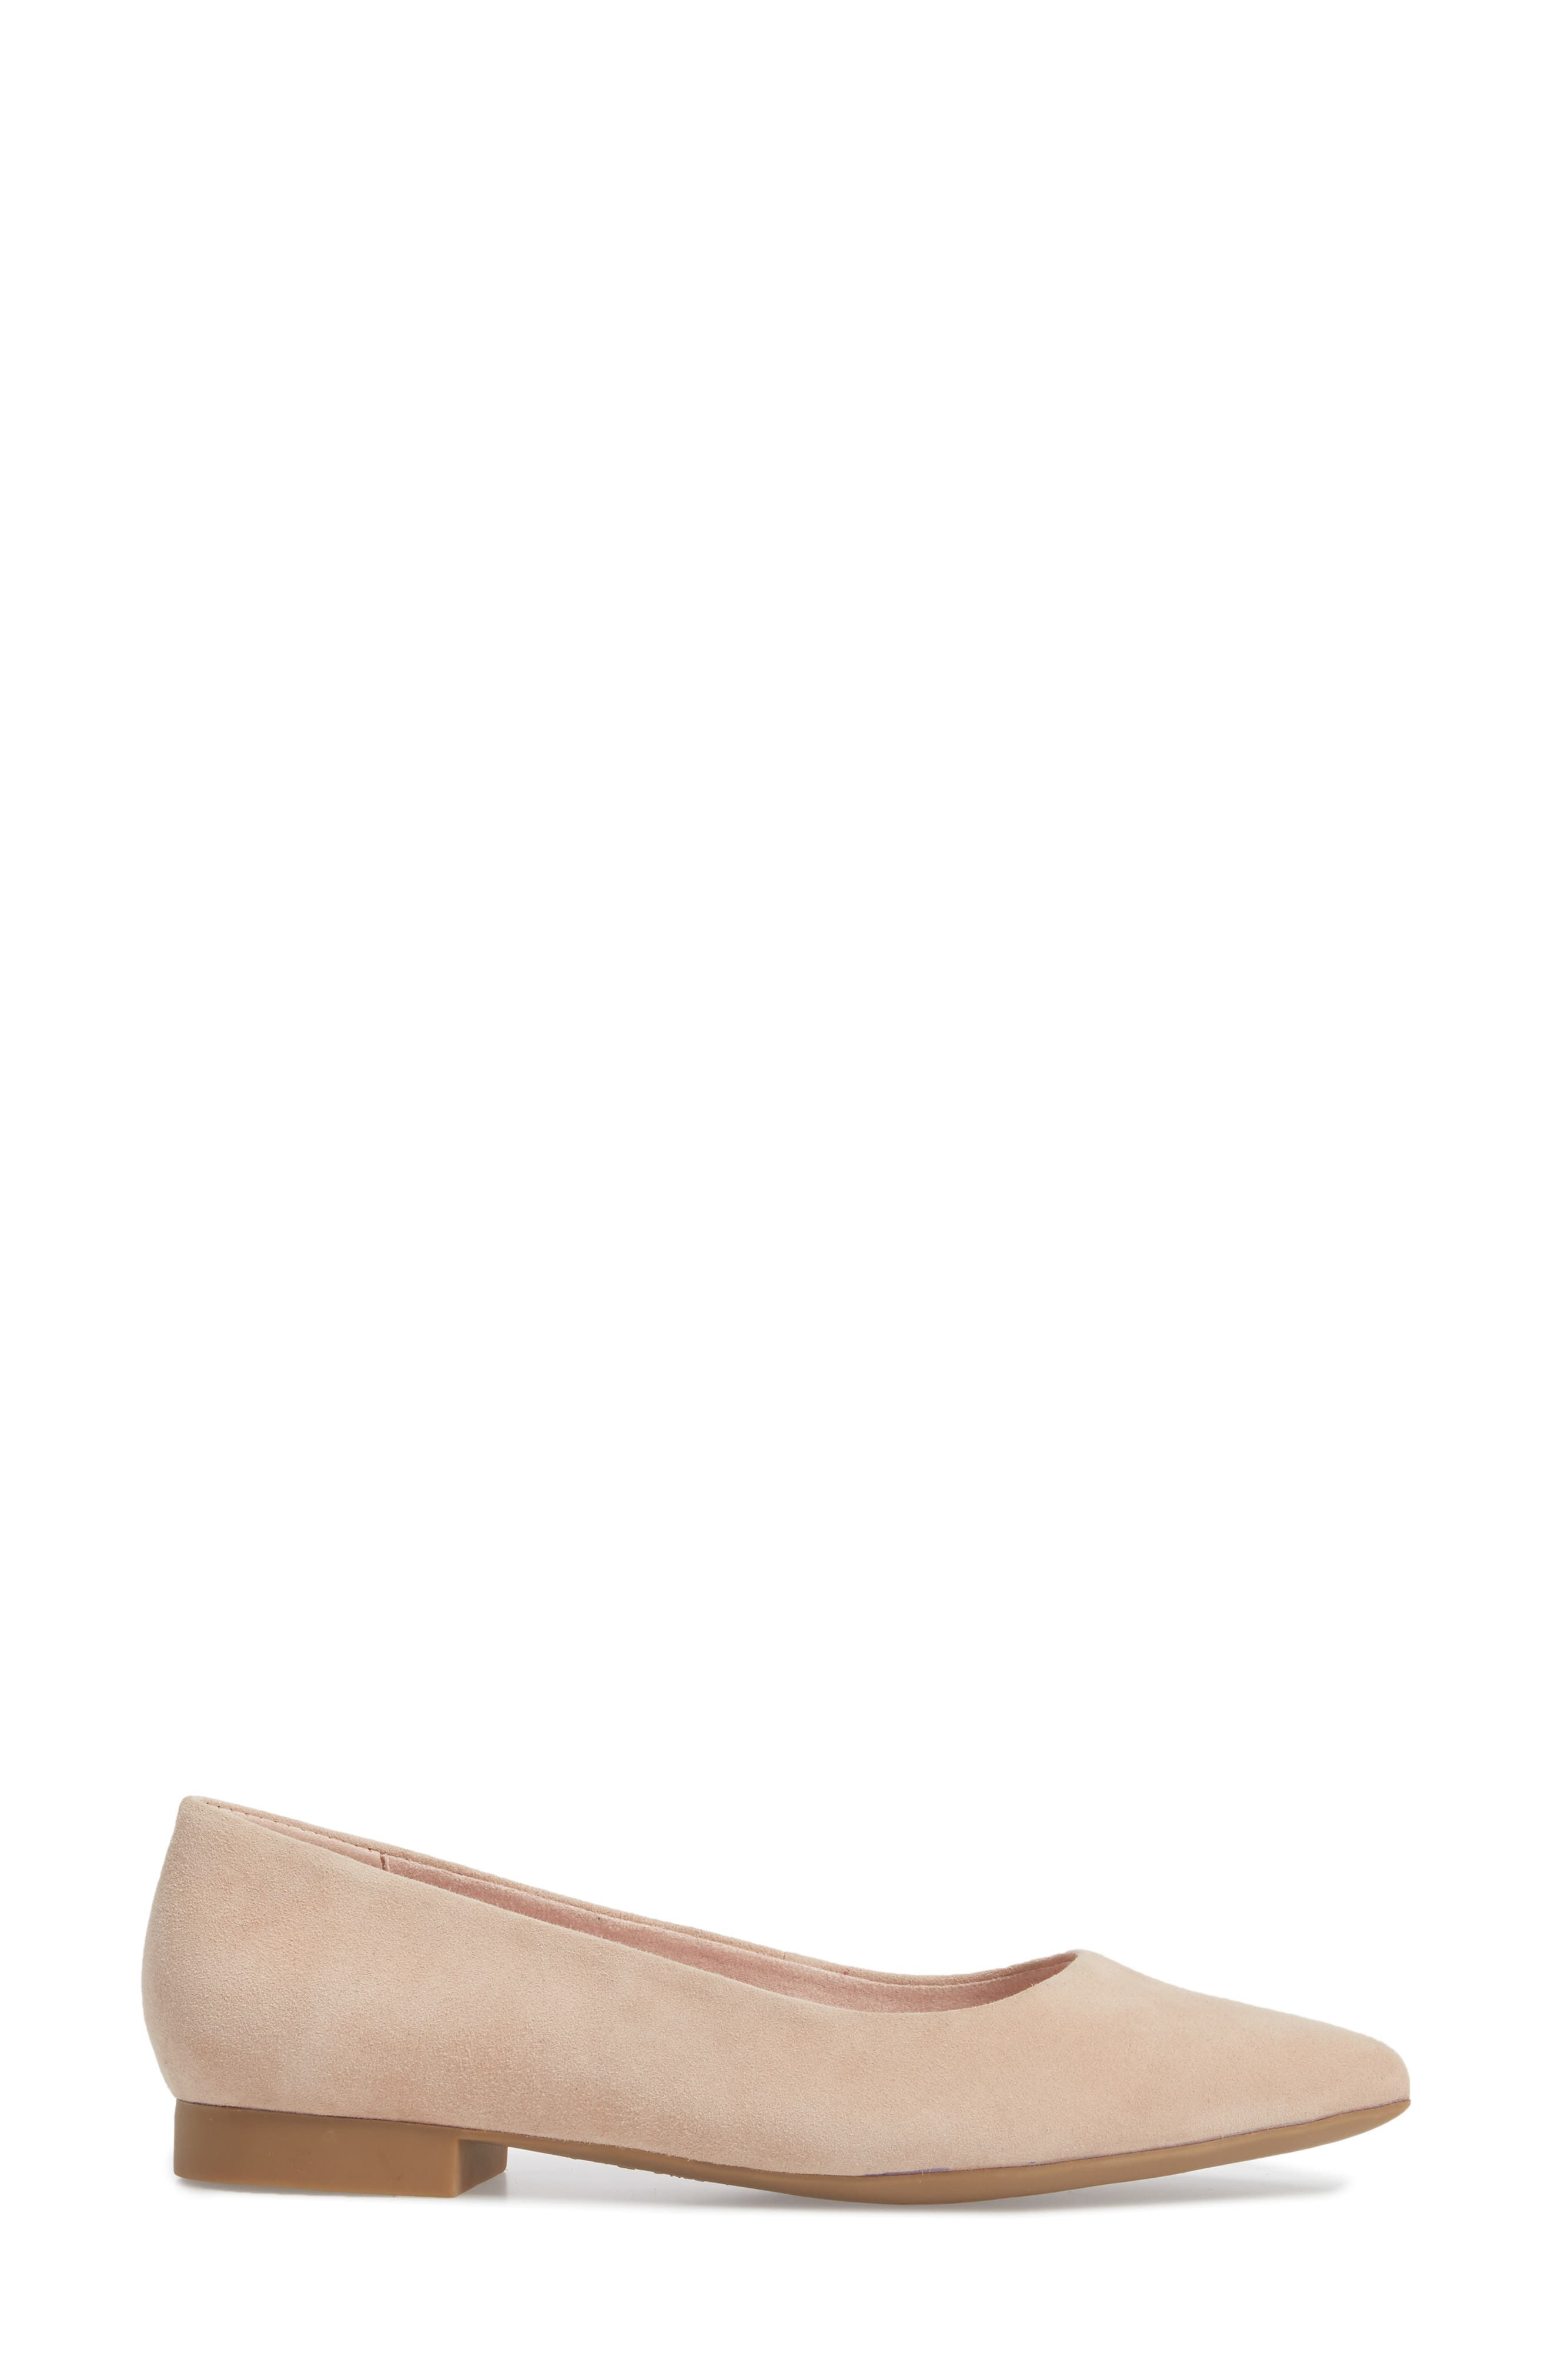 'Vivien' Pointy Toe Flat,                             Alternate thumbnail 3, color,                             BLUSH SUEDE